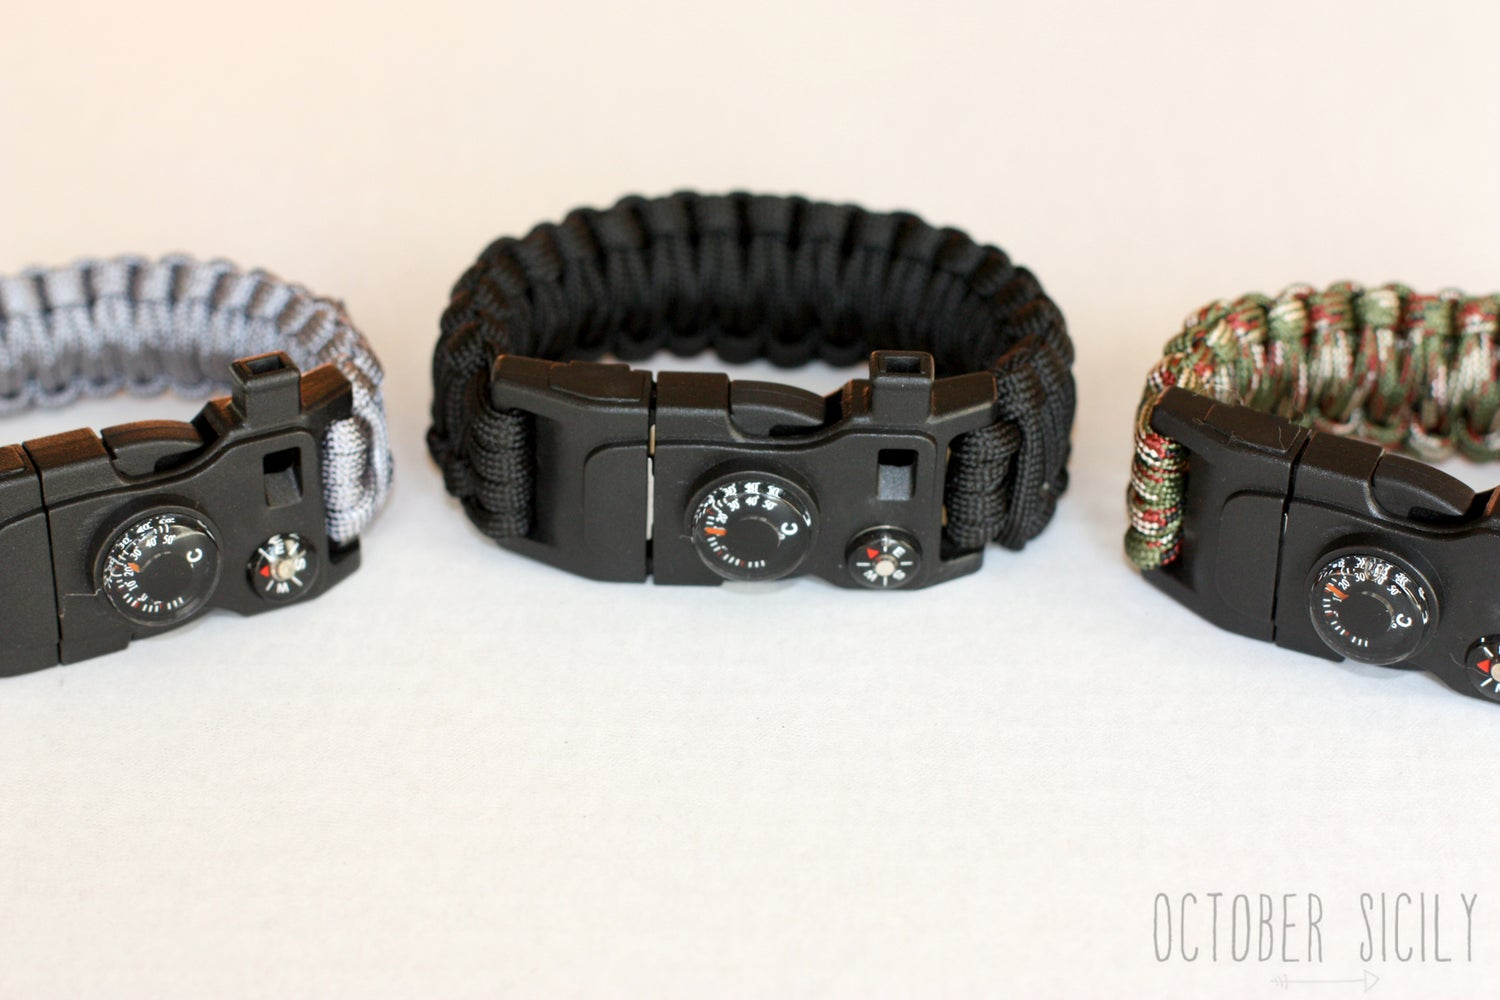 Image of DELUXE Survival Bracelet | Flint, Fish Hook, Whistle +More